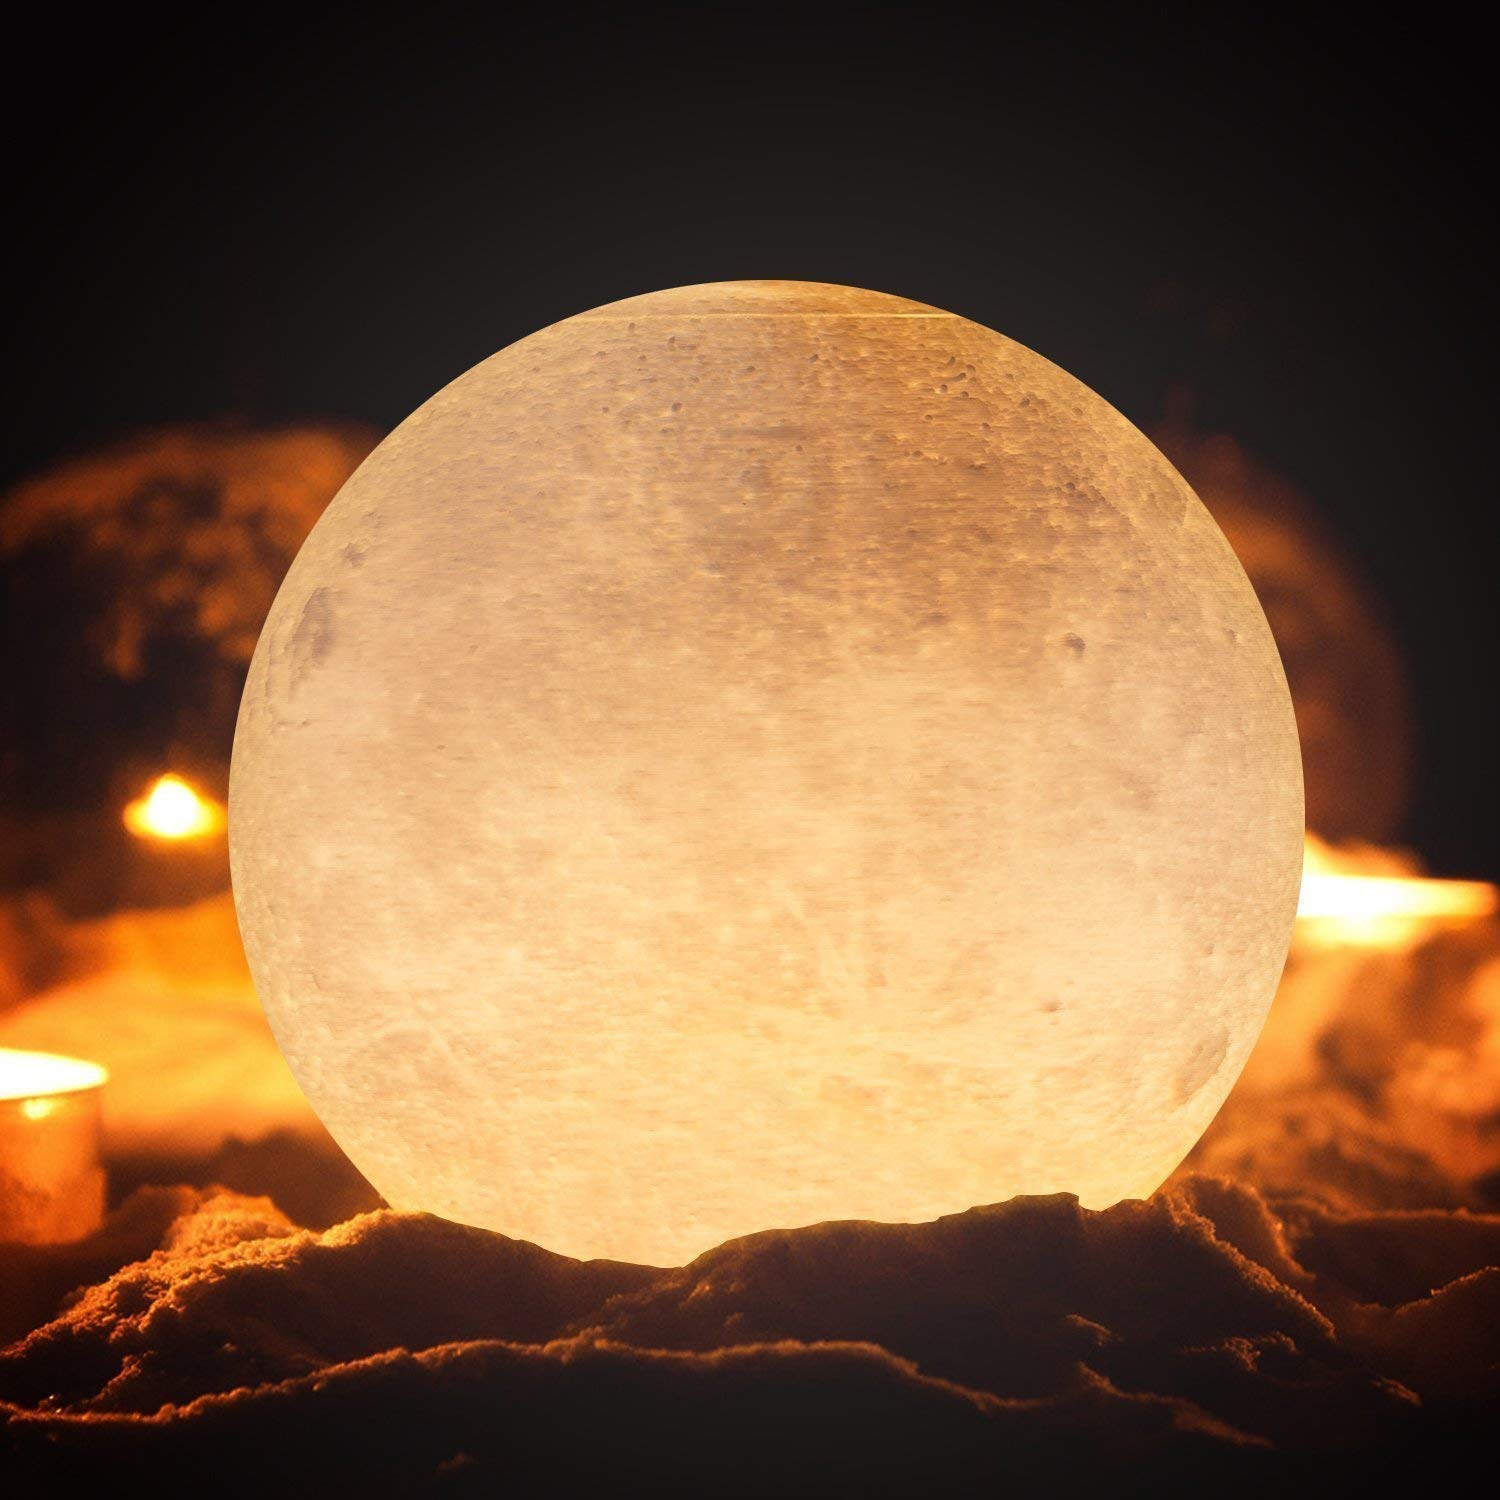 3D Printed Moon Lamp, LED Glowing Moon Globe Light, Night Light with Wood Stand Creative Gift for Child LED Dimmable (5.9inch)